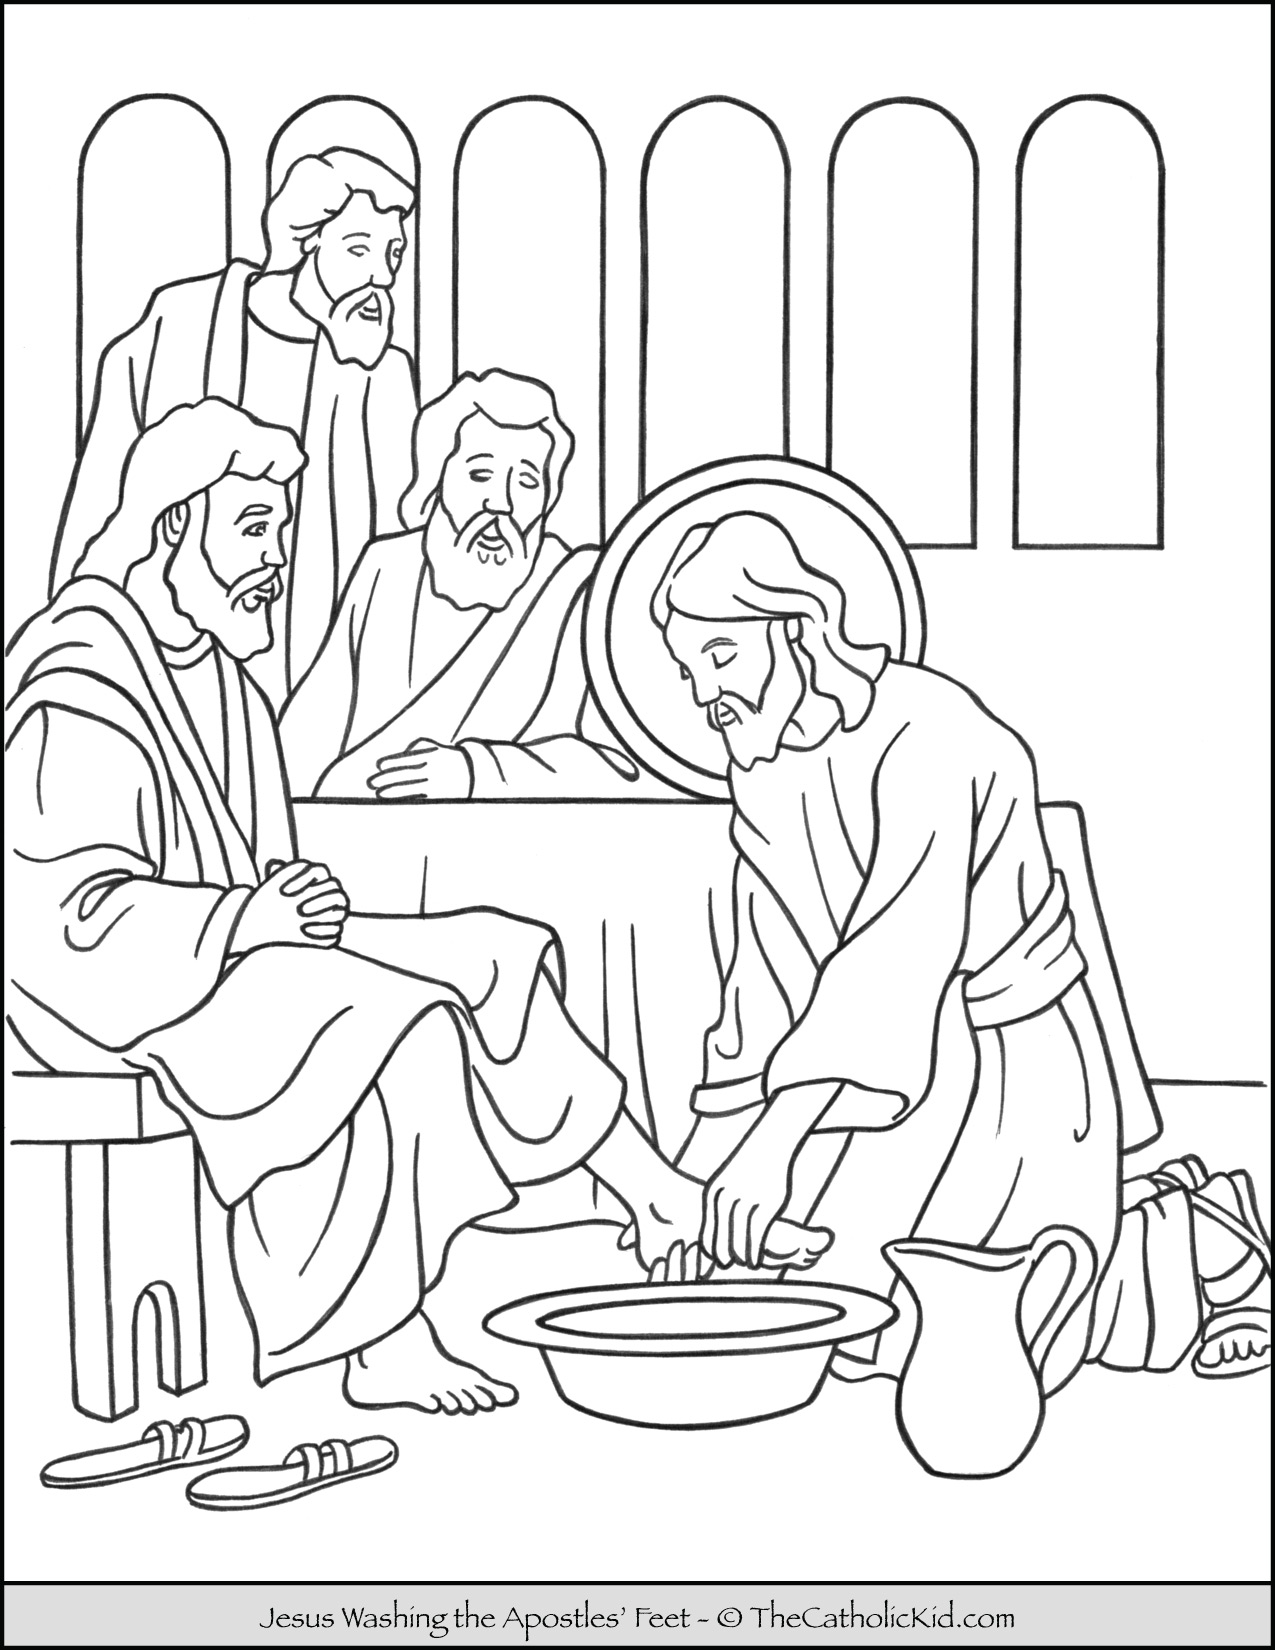 jesus washes the disciples feet coloring page jesus washing feet coloring pages free coloring pages jesus disciples page feet coloring washes the